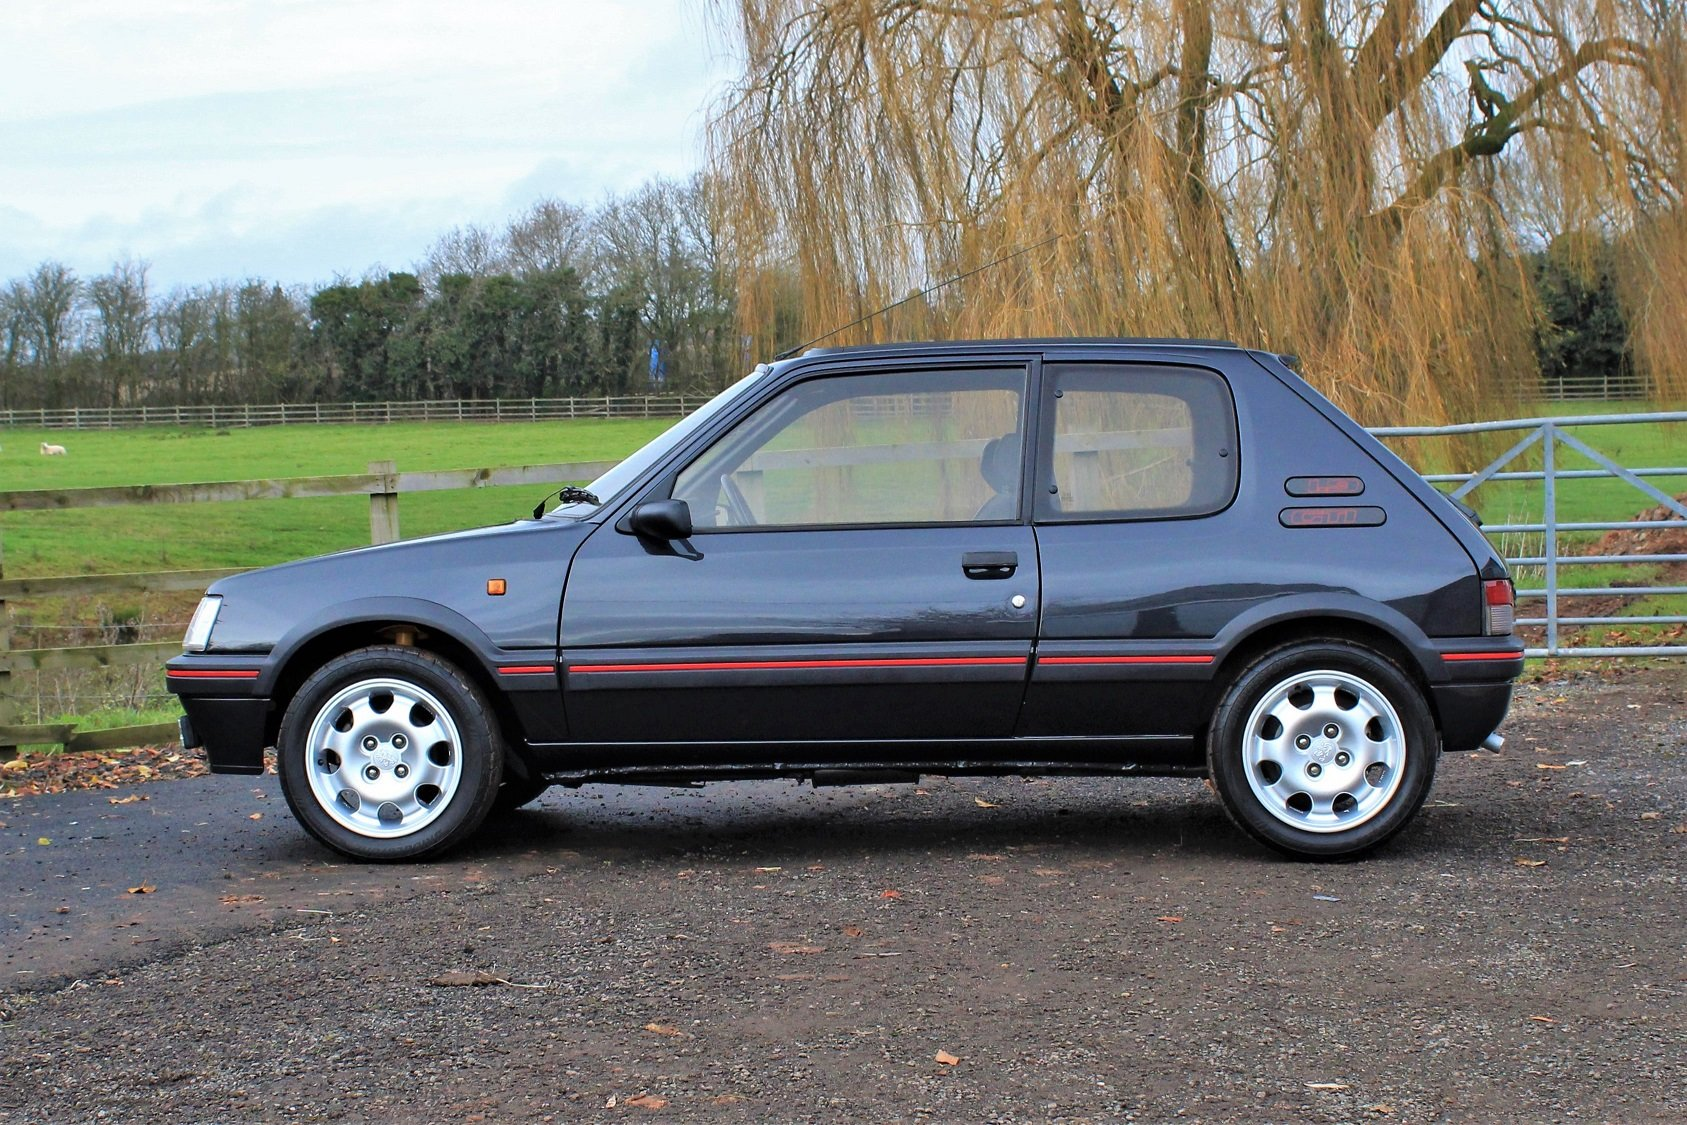 1991 Peugeot 205 GTI 3dr,65,534 miles from new For Sale (picture 1 of 6)